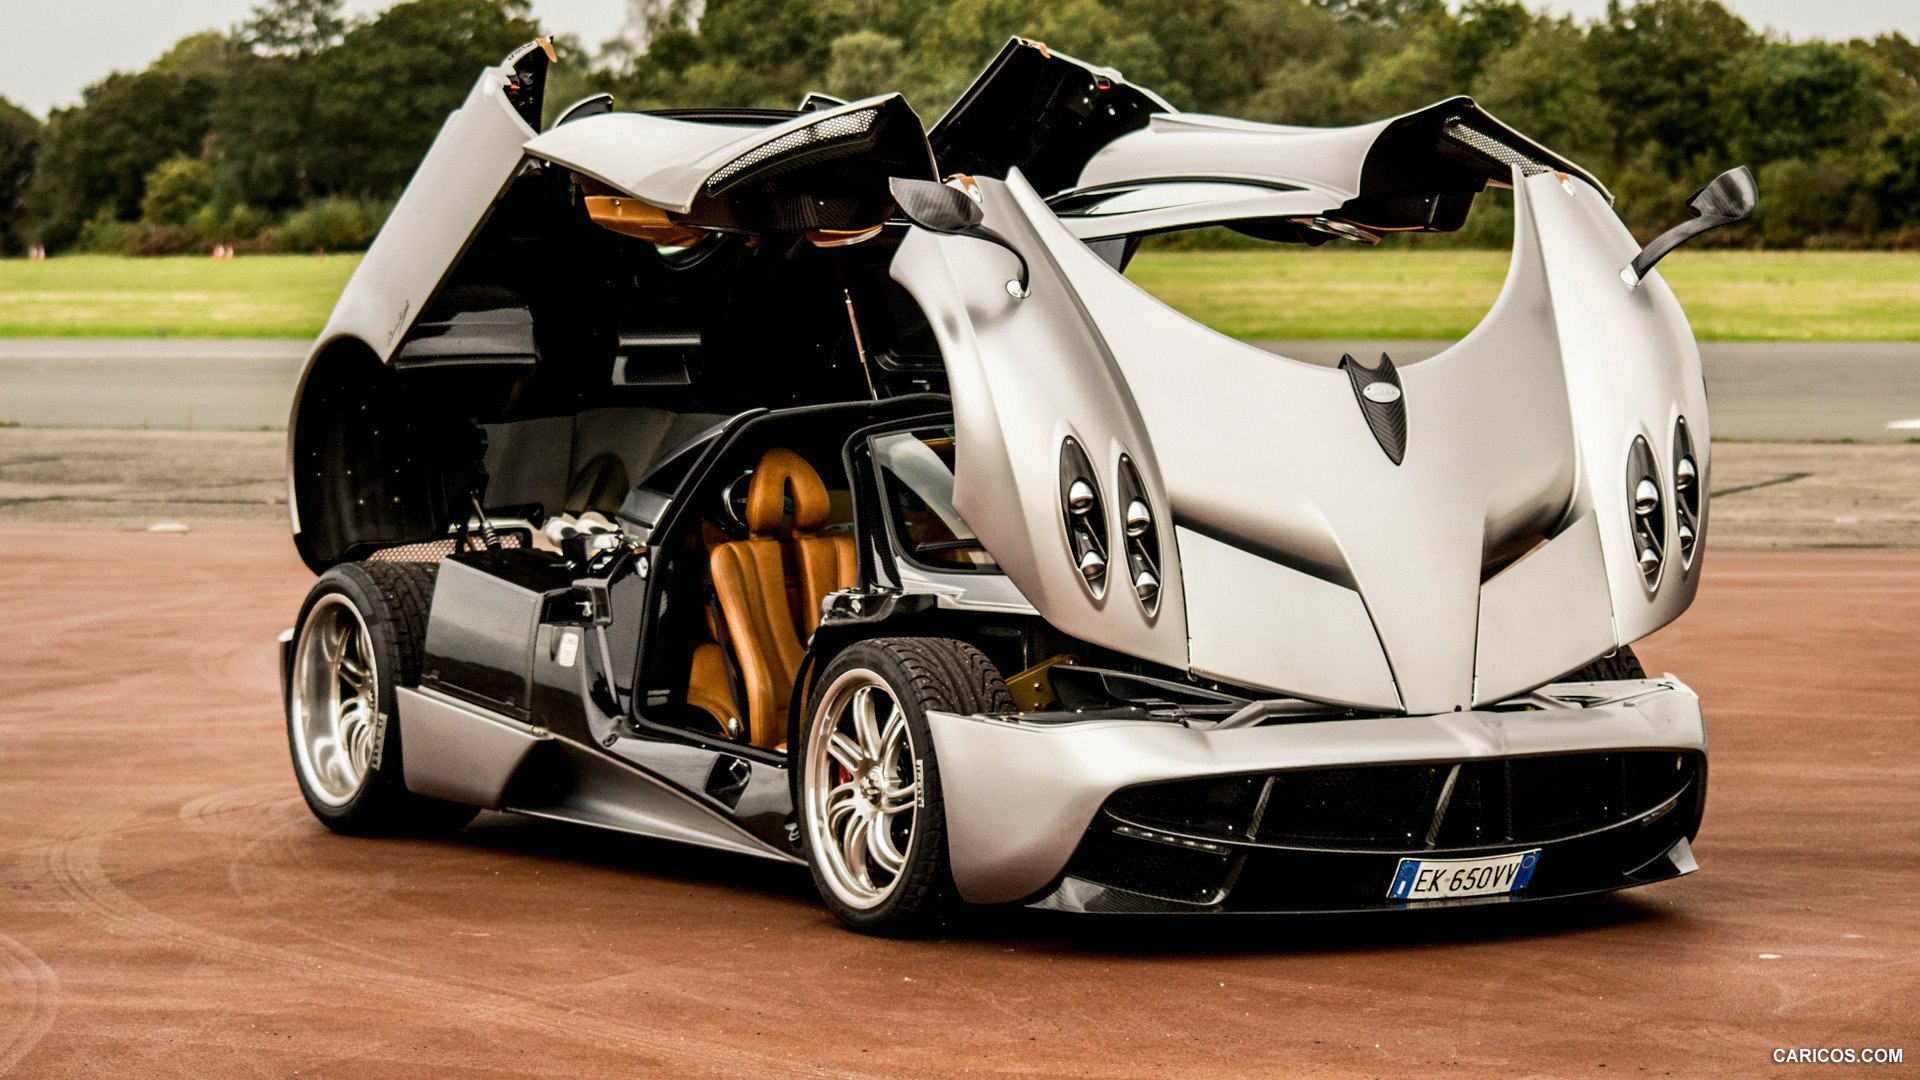 Awesome Pagani Huayra Free Background ID:160159 For Full Hd 1920x1080  Desktop